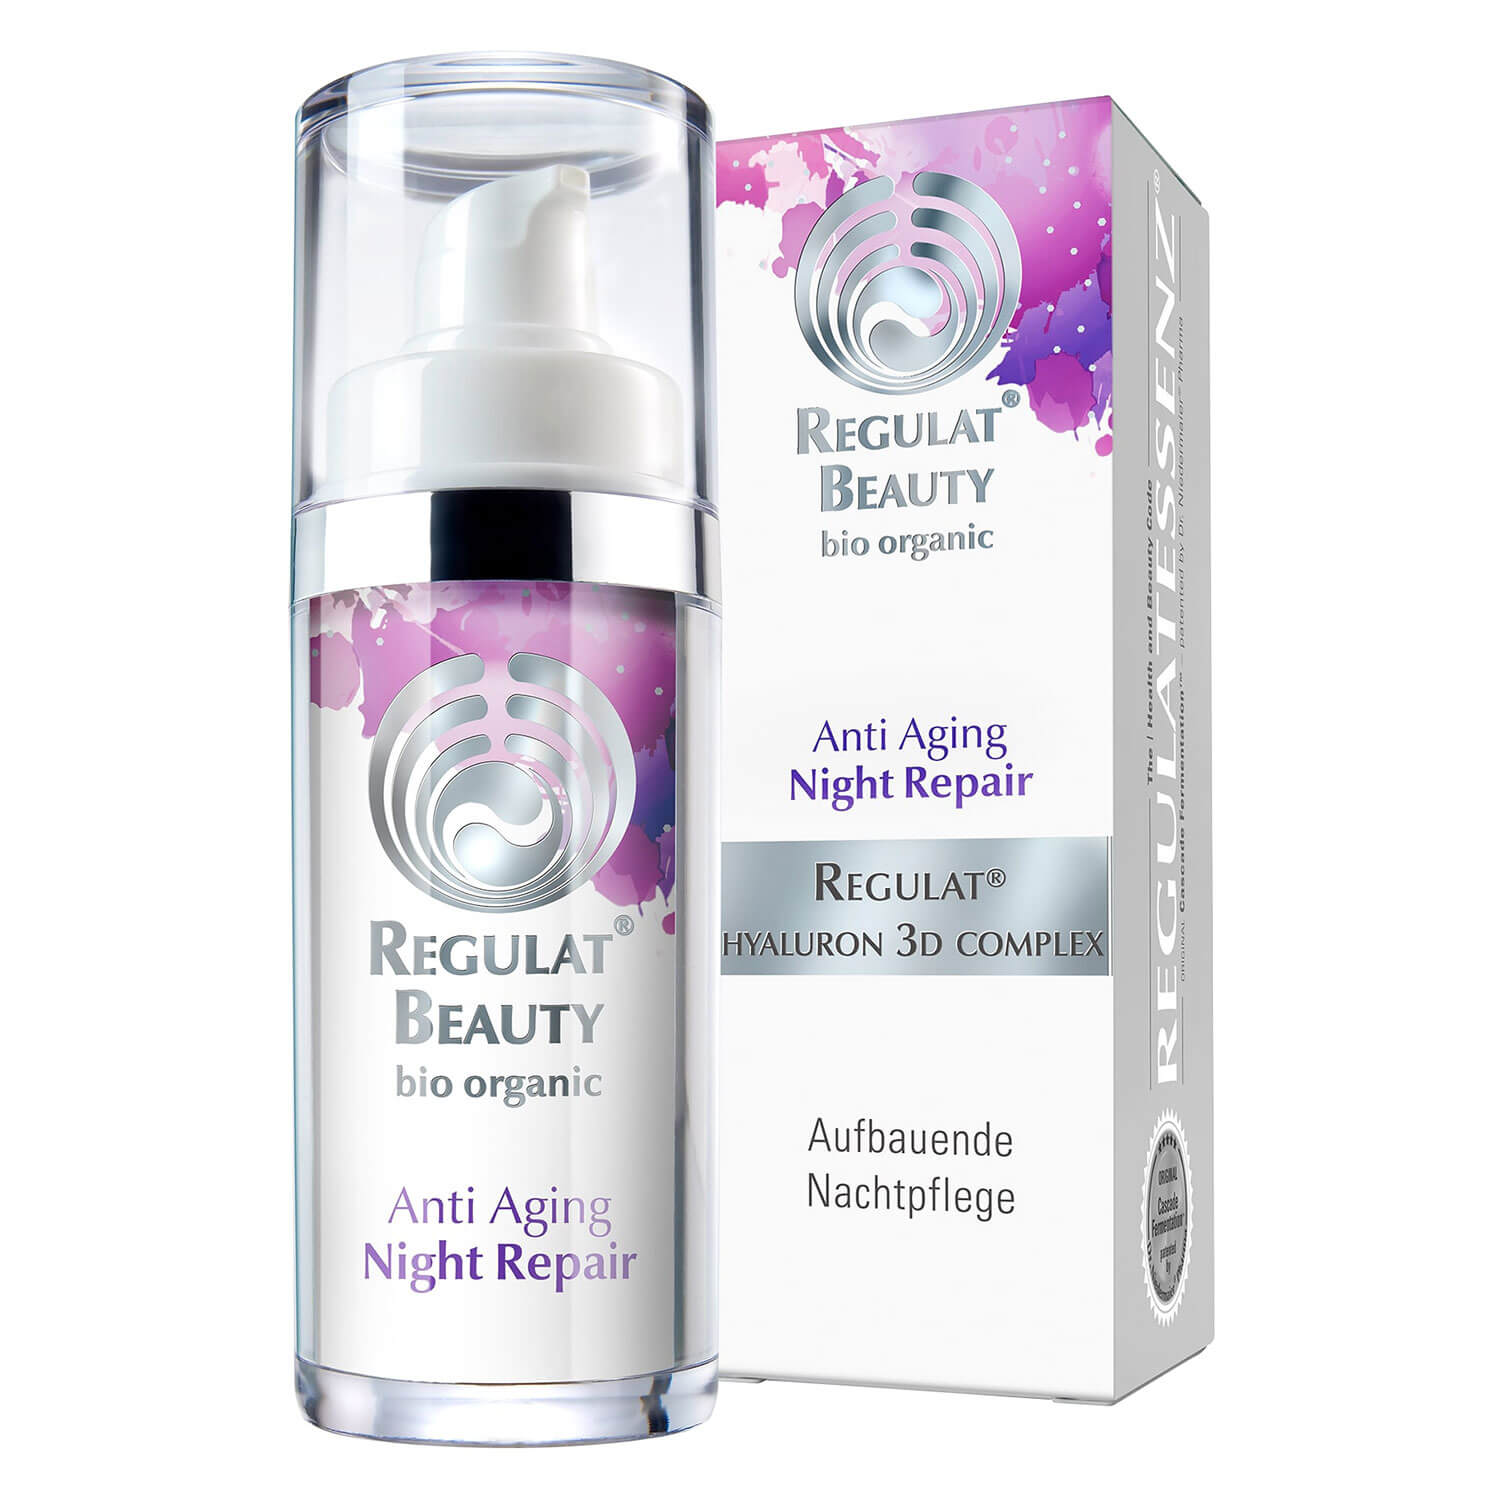 Regulat® Beauty - Anti Aging Night Repair